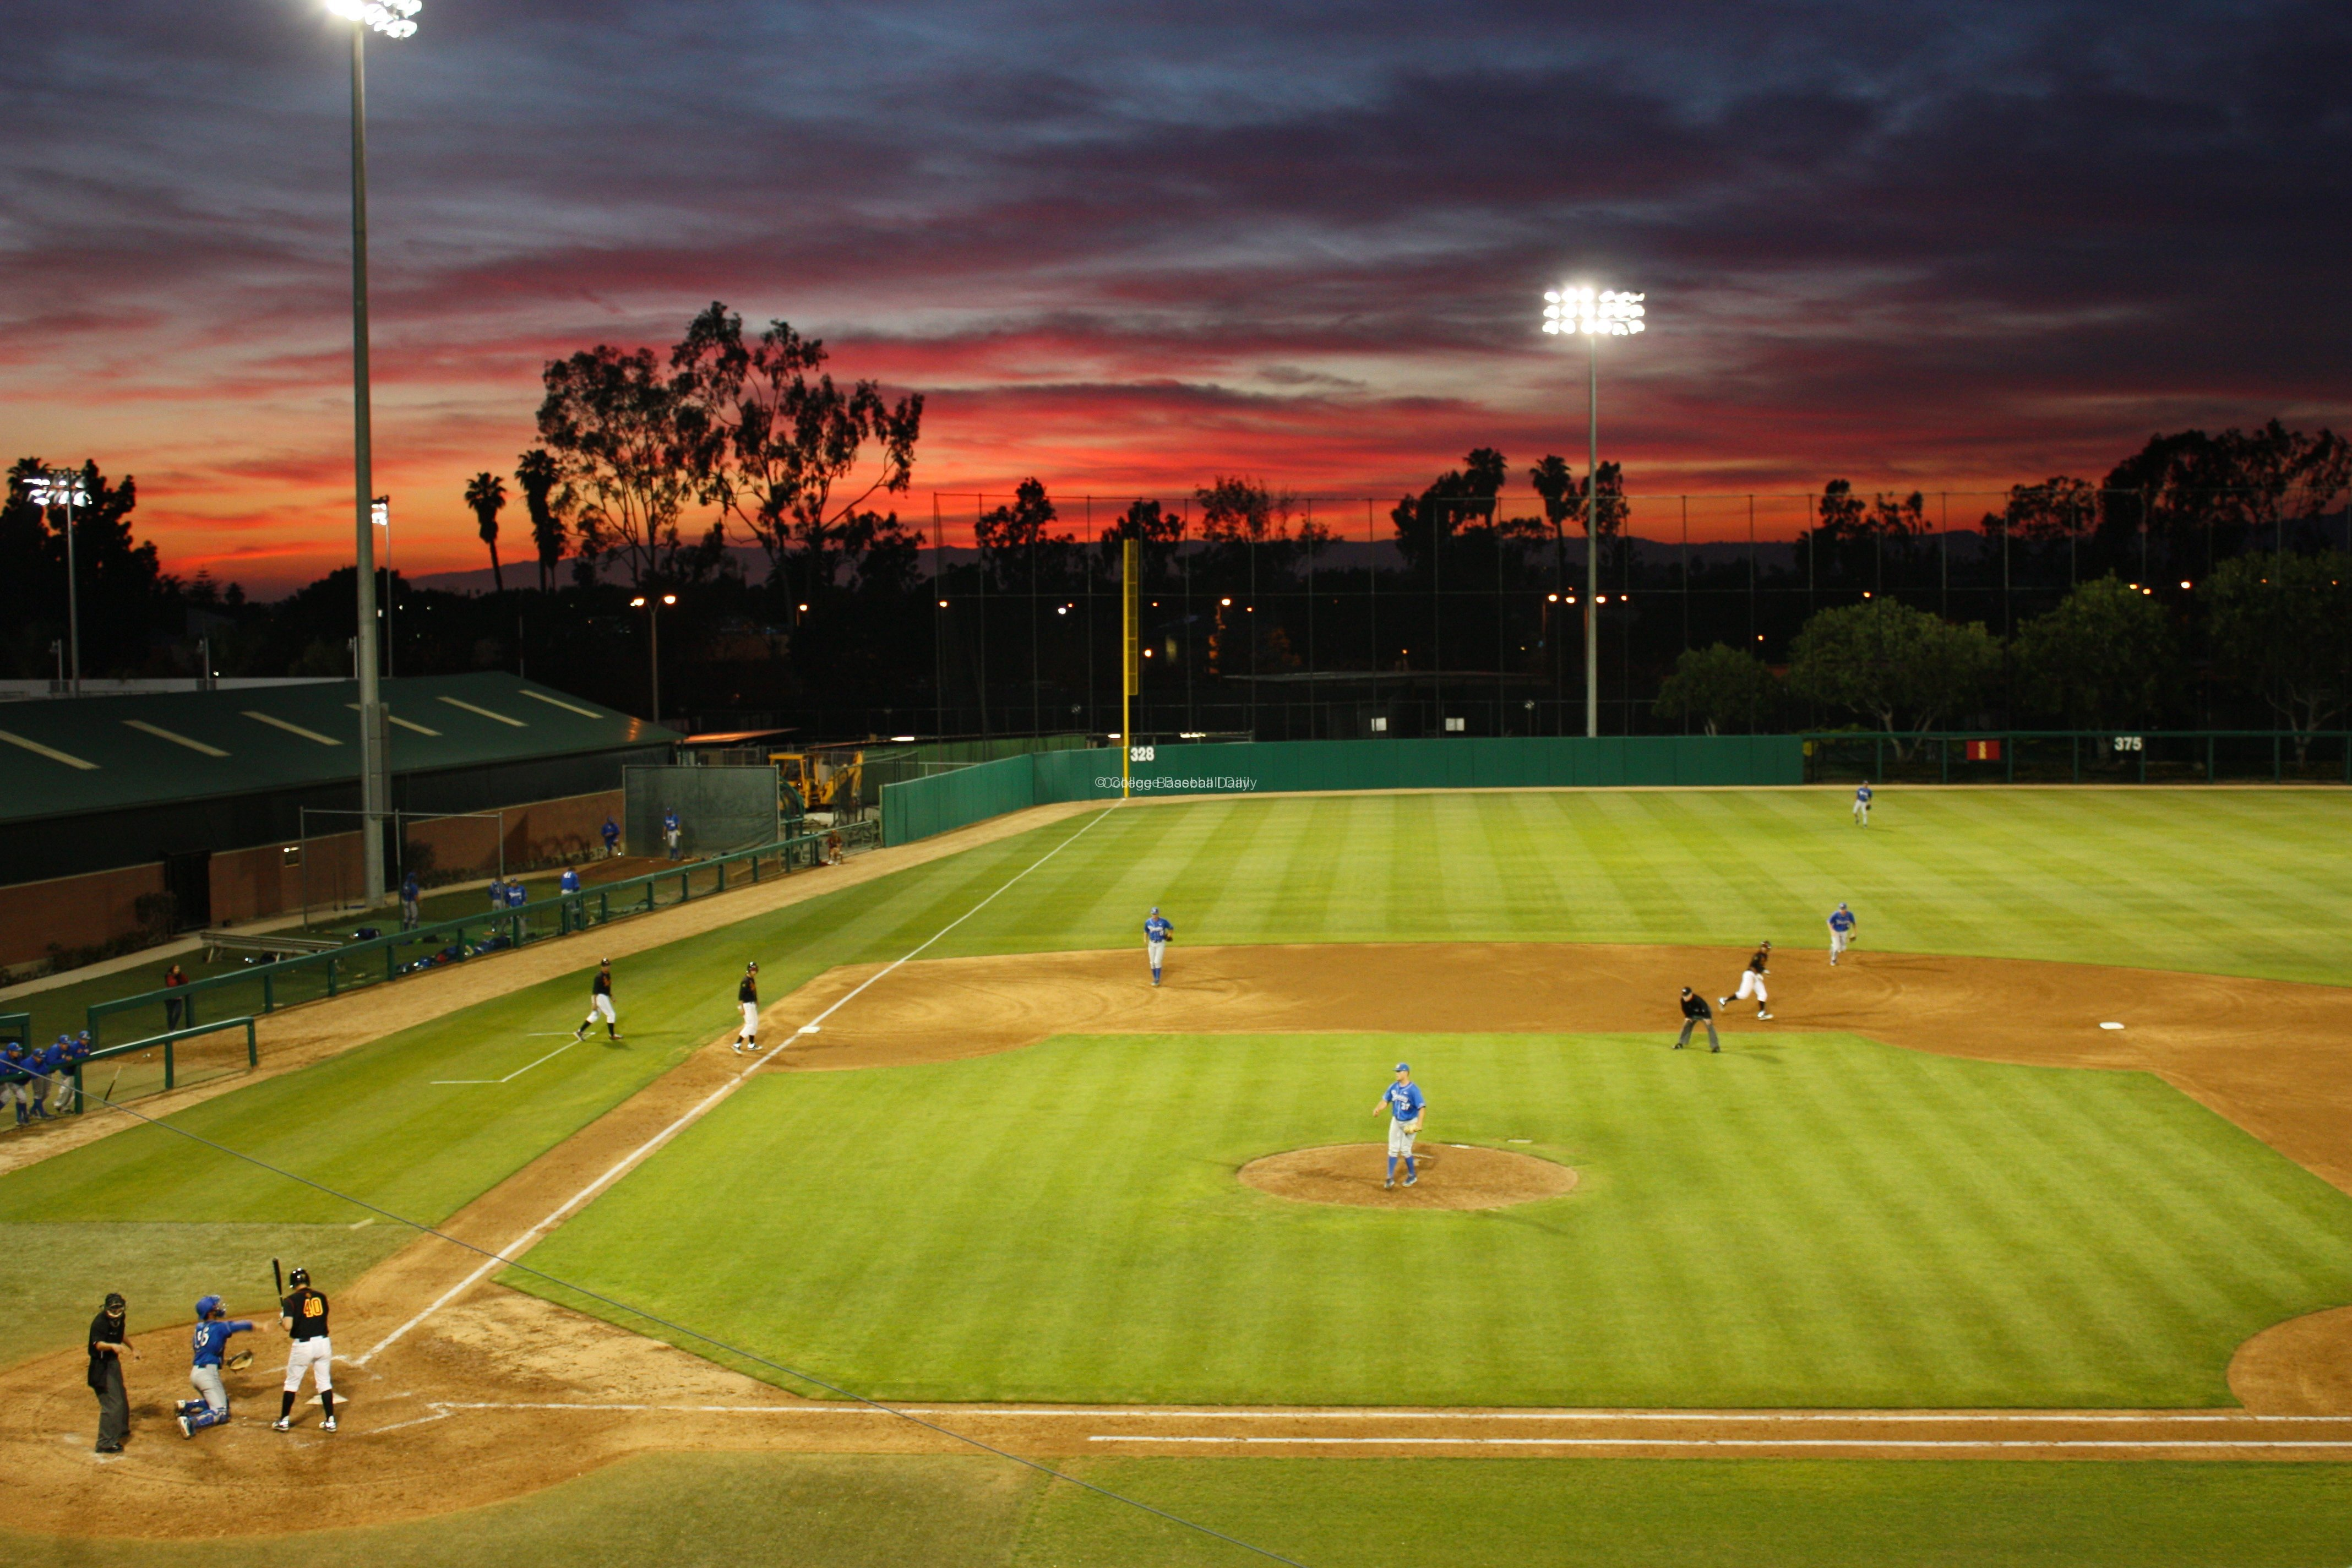 The sun setting at Dedeaux Field.